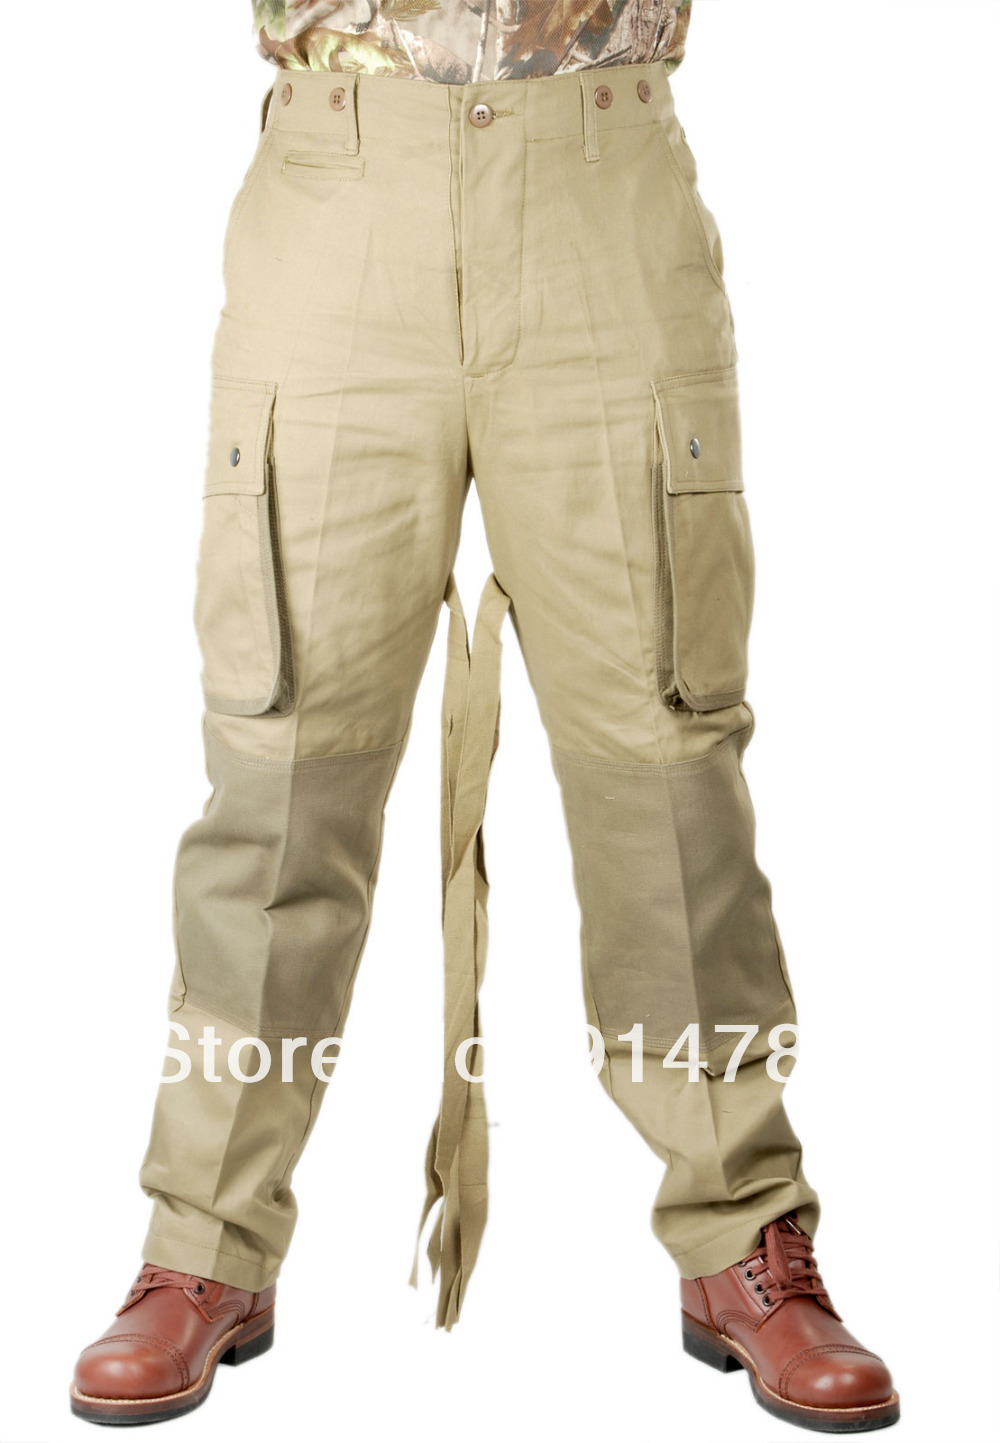 WWII US M42 AIRBORNE JUMPSUIT TROUSERS IN SIZES-33999 airborne pollen allergy